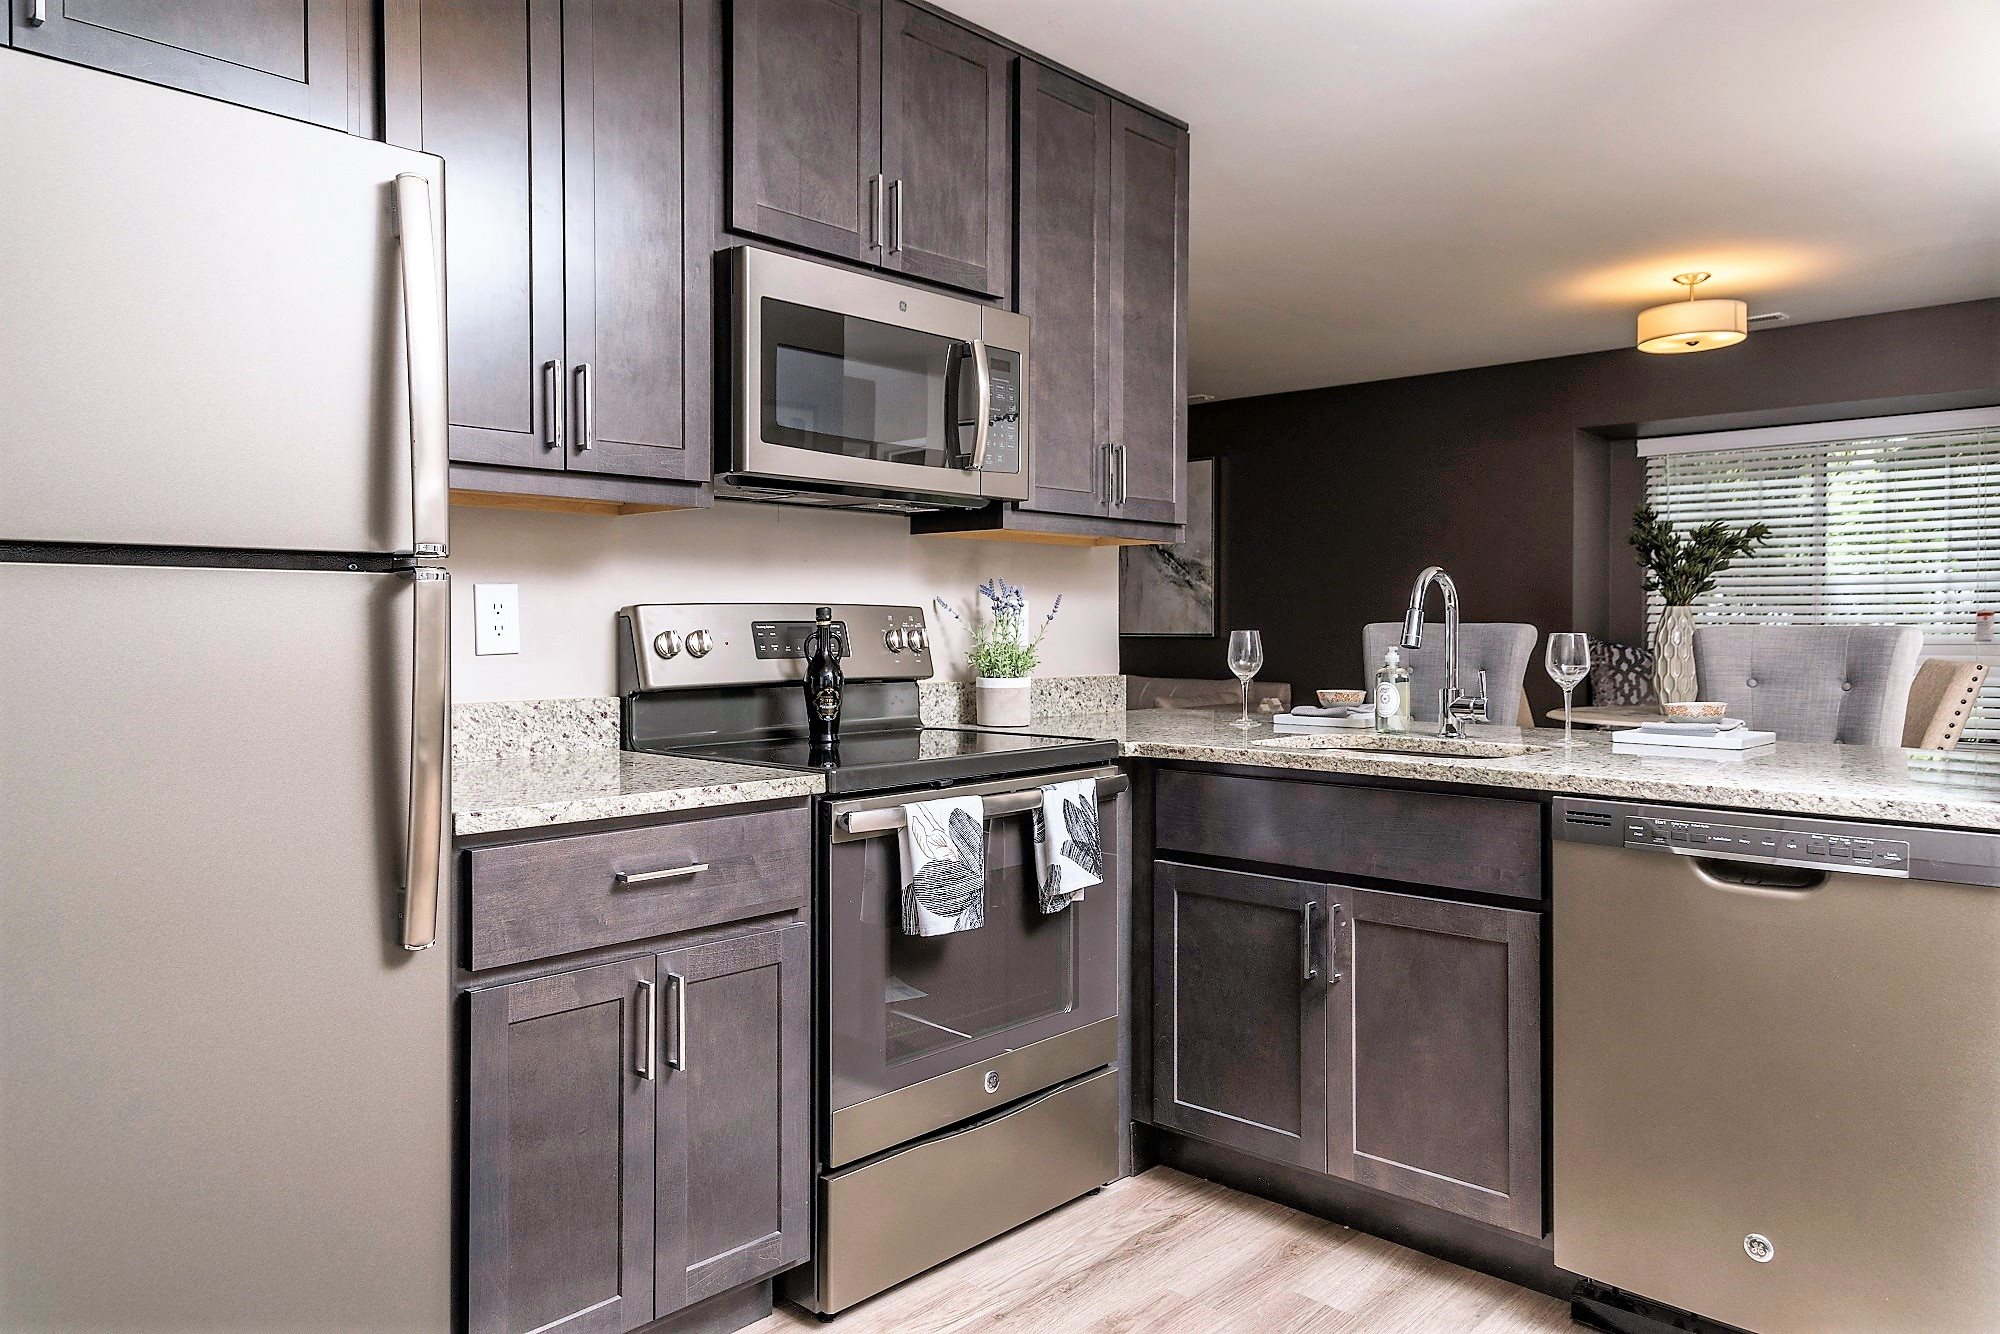 Energy Efficient Electric Appliances at the Haven of Ann Arbor, 459 Village Green Blvd, Ann Arbor, 48105